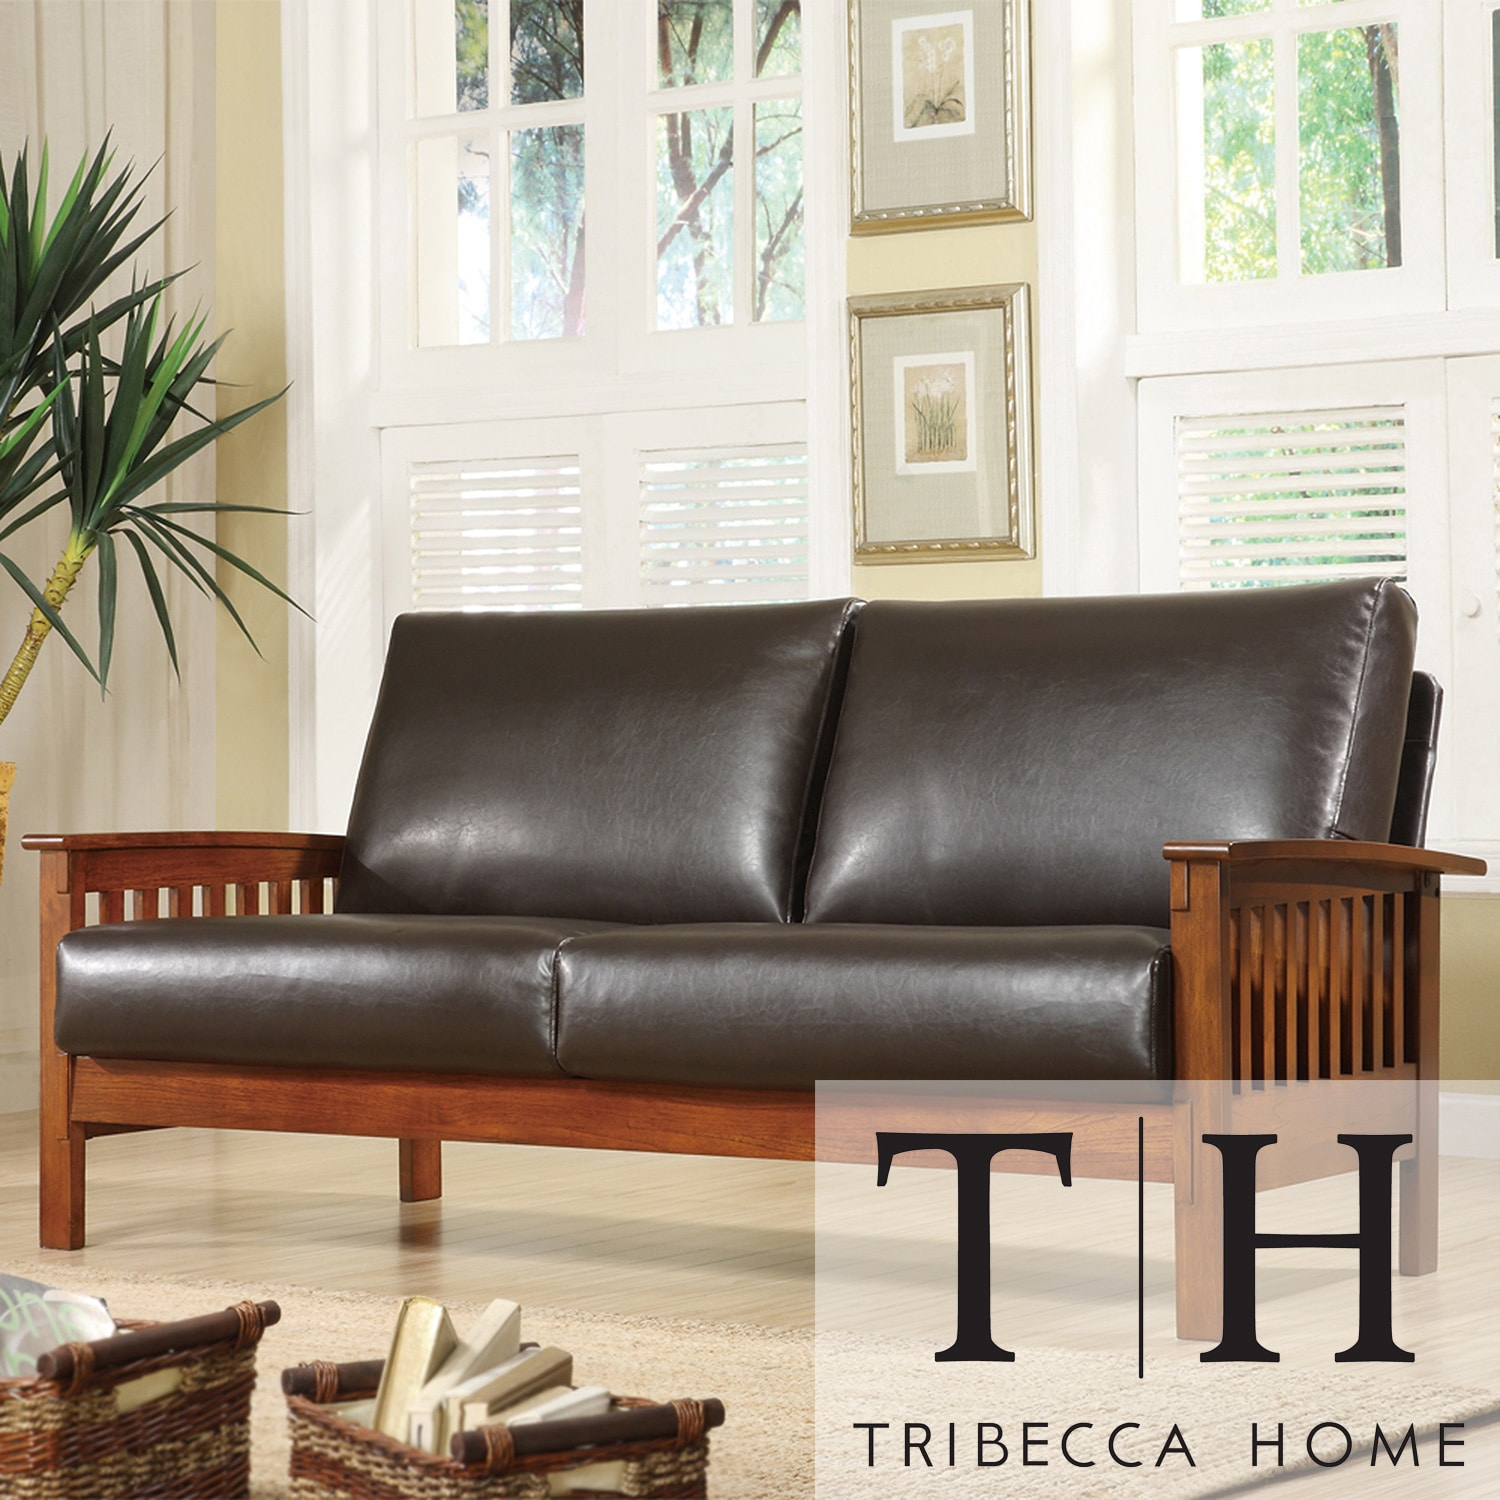 TRIBECCA HOME Hills Mission Bi-cast Faux Leather Sofa at Sears.com